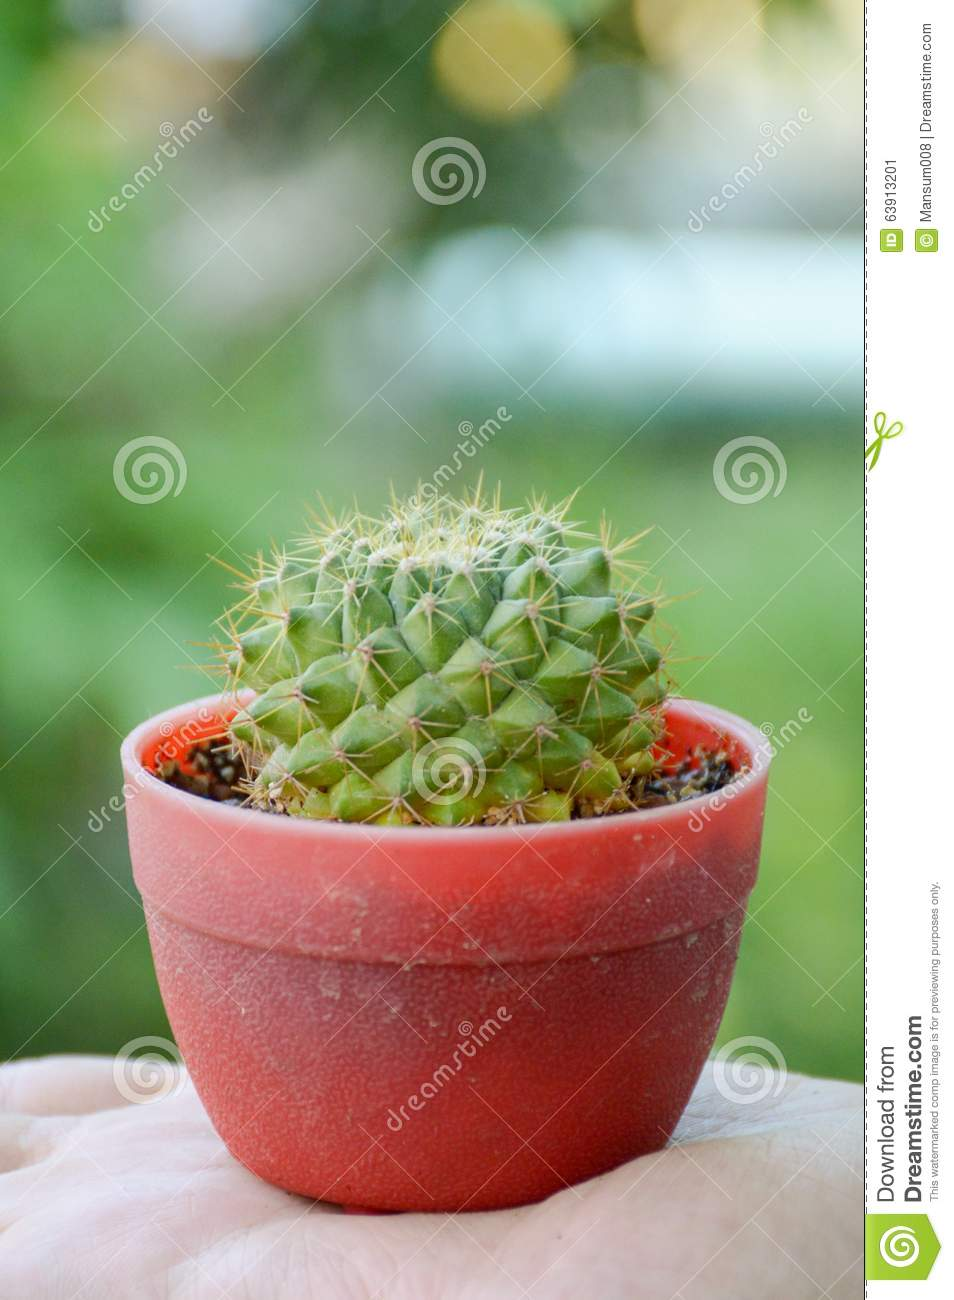 Download Green cactus tree stock image. Image of succulent, plants - 63913201